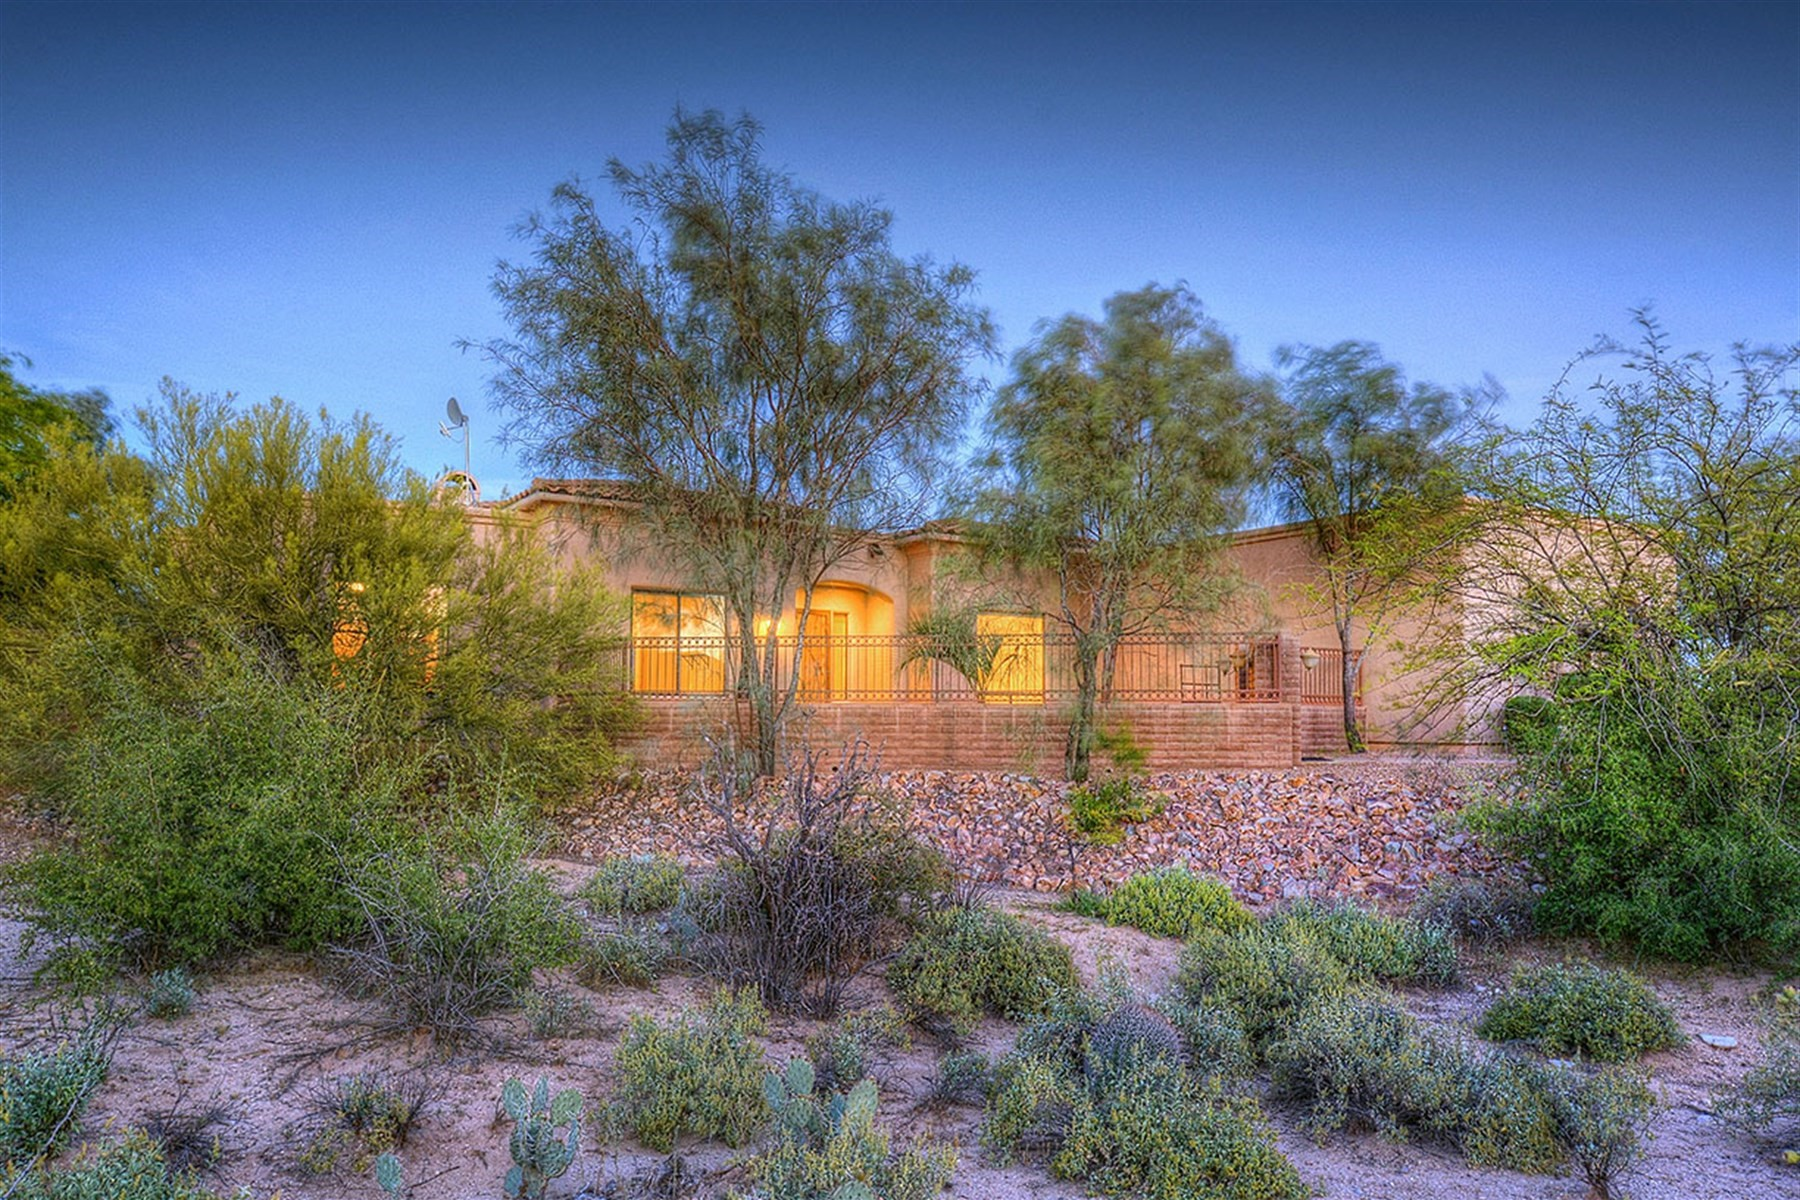 Single Family Home for Sale at Custom Built Retreat 5133 W Camino De Manana Tucson, Arizona, 85742 United States